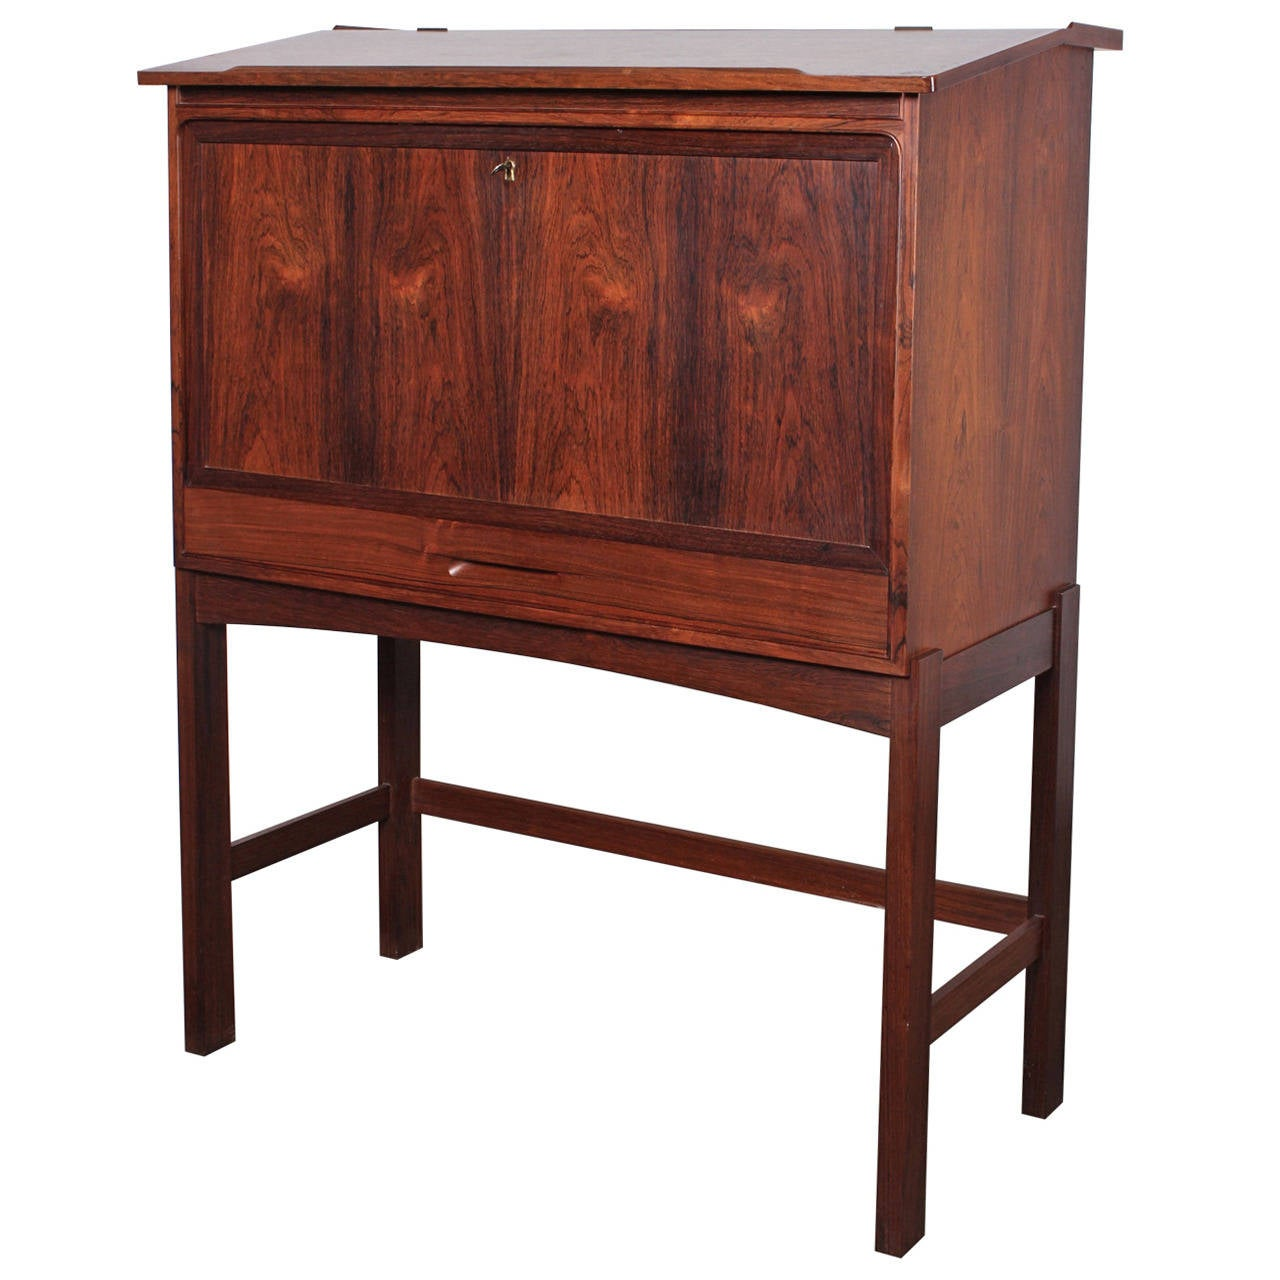 Rosewood drop front desk at stdibs